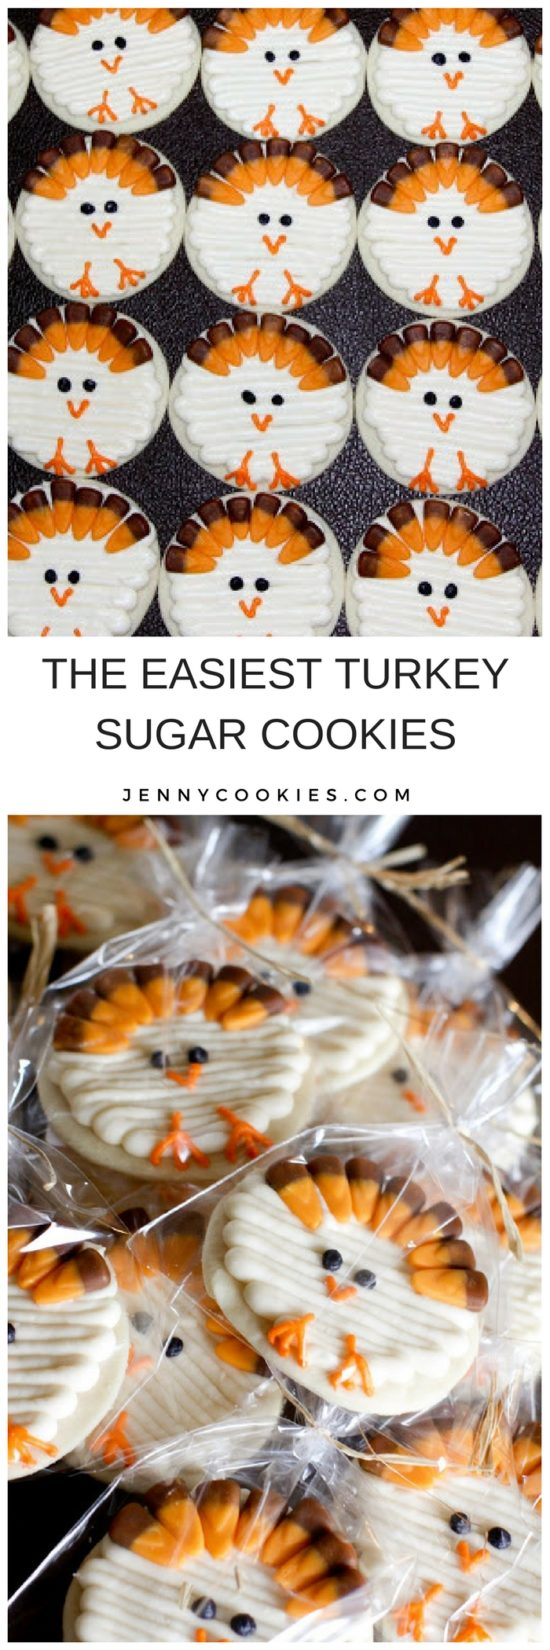 turkey cookies | thanksgiving cookies | thanksgiving desserts | how to decorate cookies for thanksgiving | holiday cookie recipes | turkey themed desserts || JennyCookies.com #turkeycookies #thanksgiving #thanksgivingdesserts #cookiedecorating